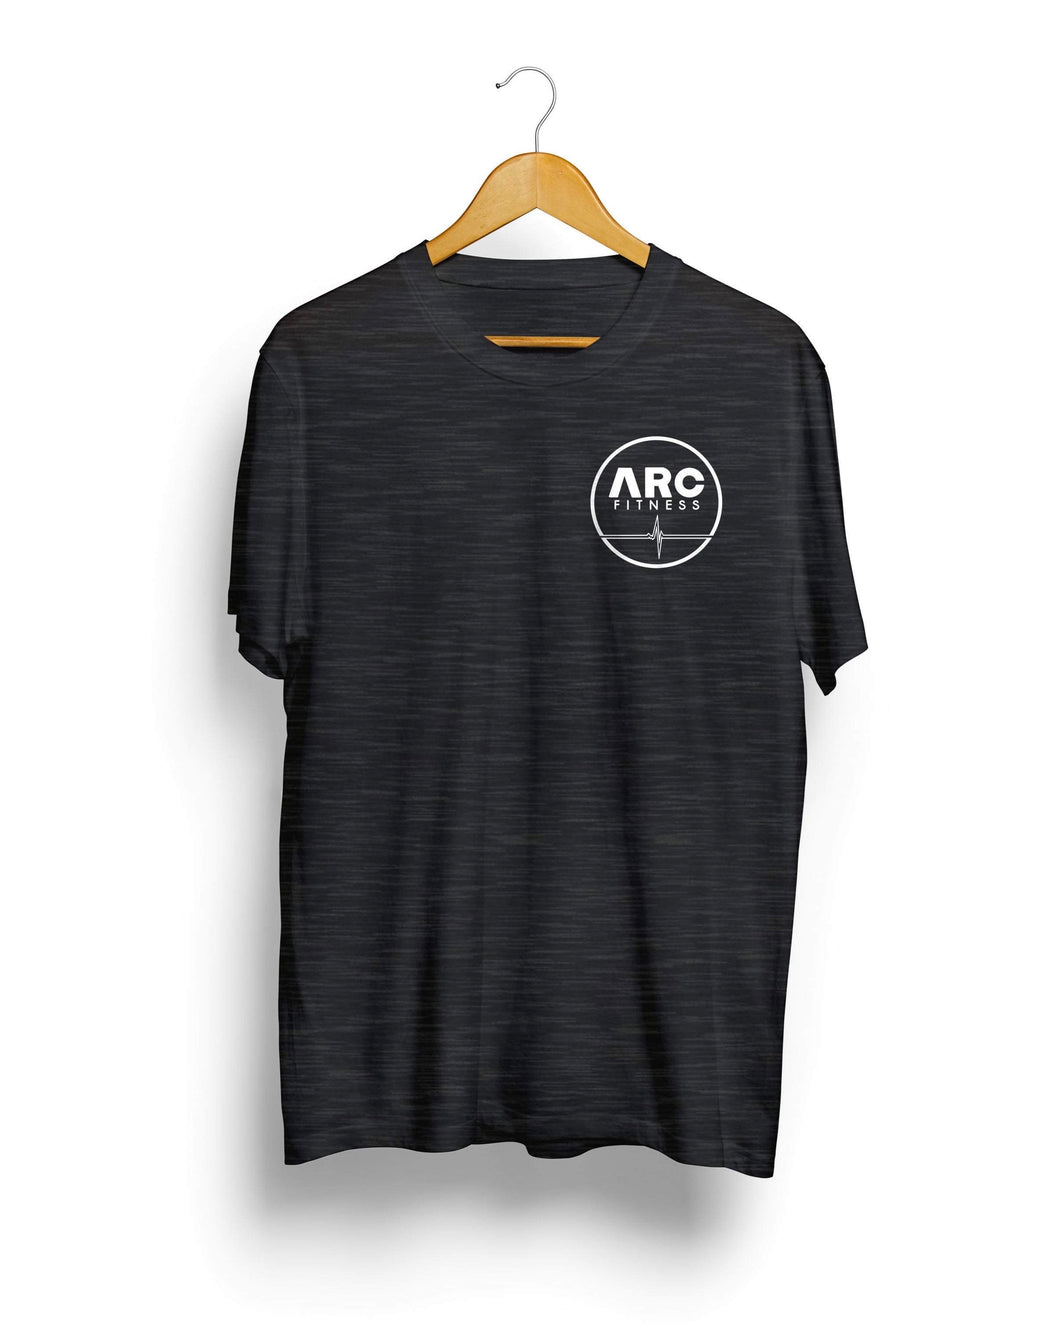 ARC Fitness Tri-Blend Training Tee